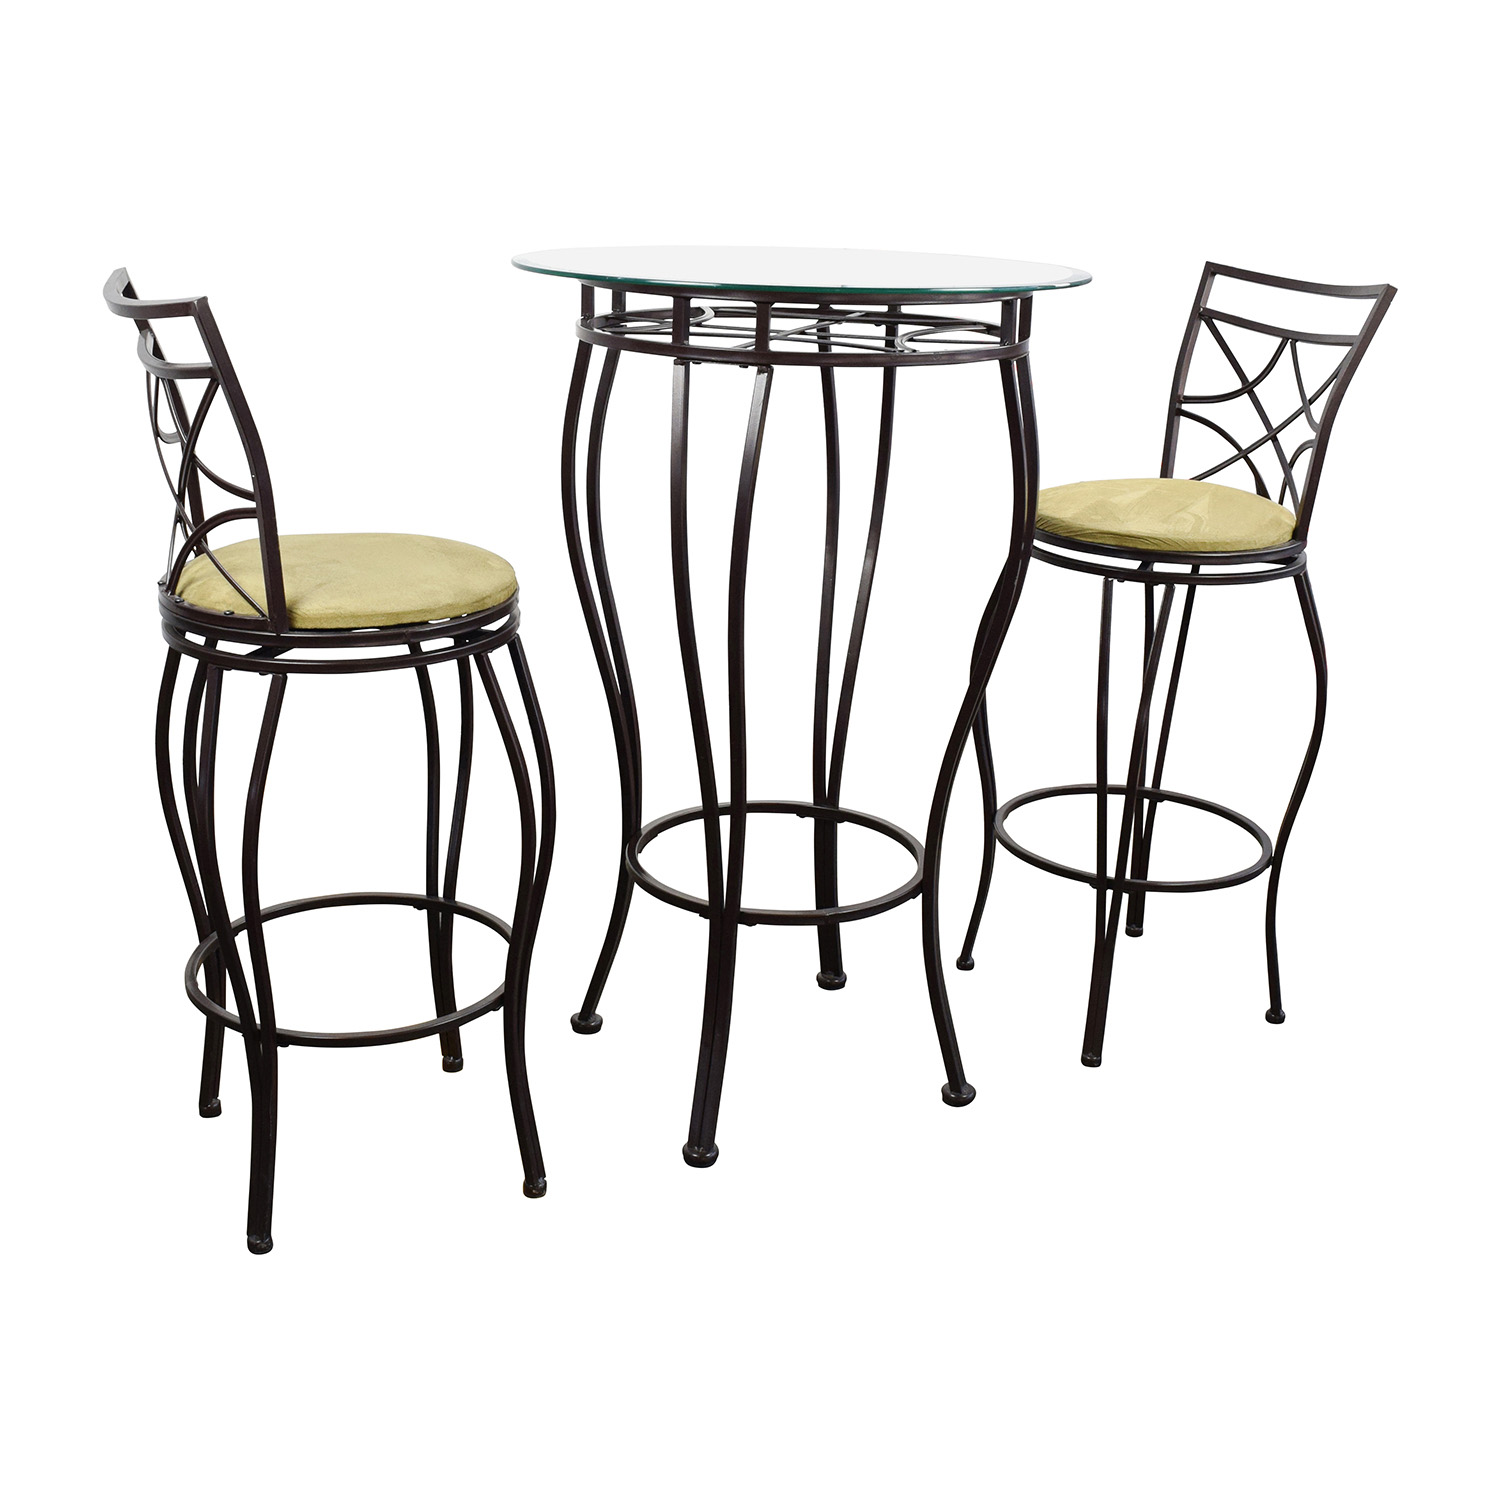 89 OFF  Iron Bistro Table and Two Chairs  Tables